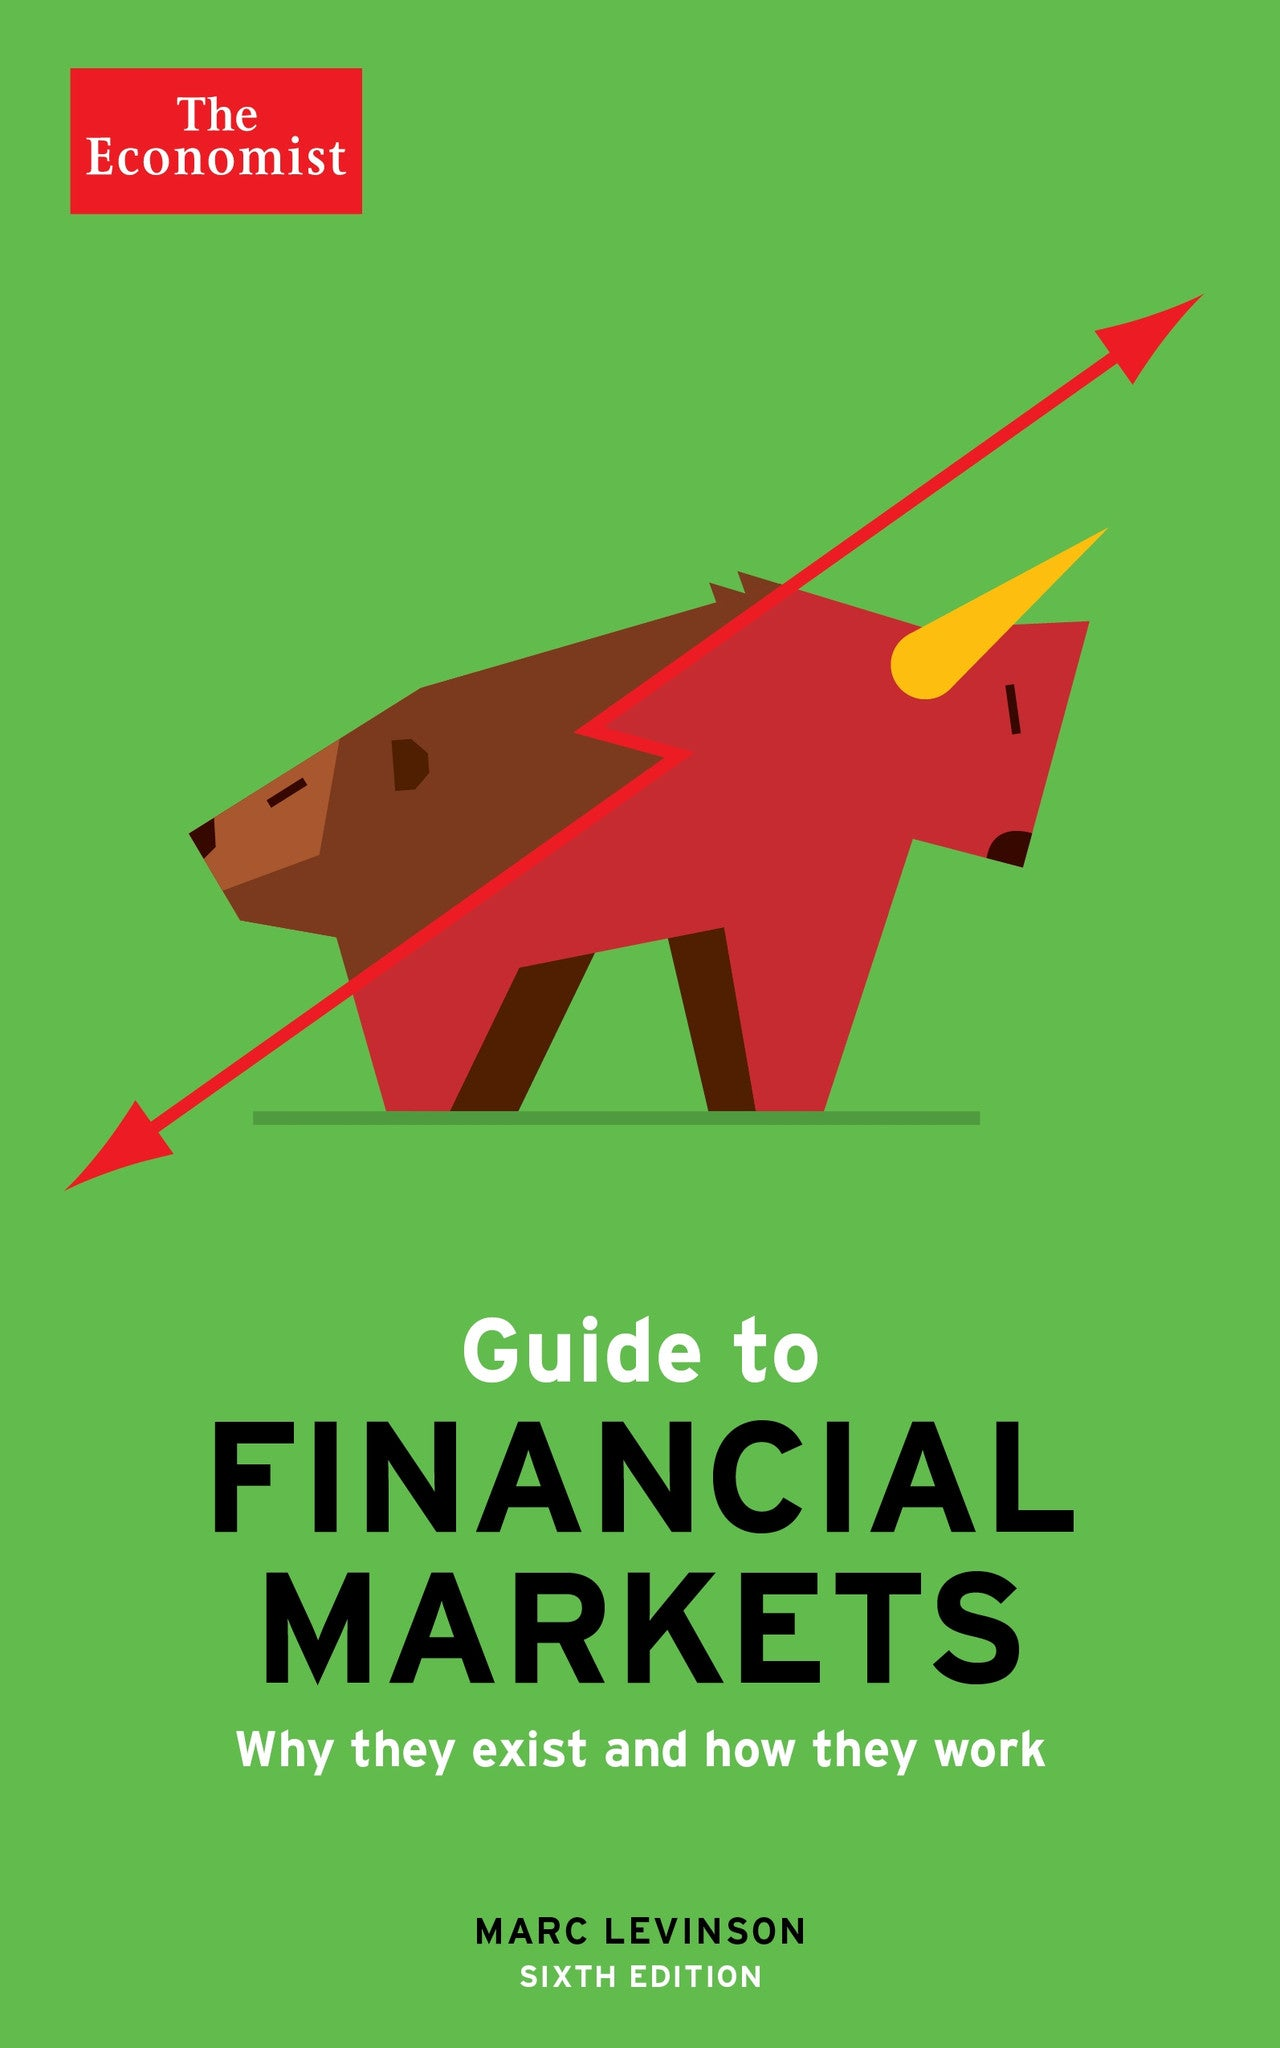 The Economist Guide To Financial Markets 6th Edition (E-Book)